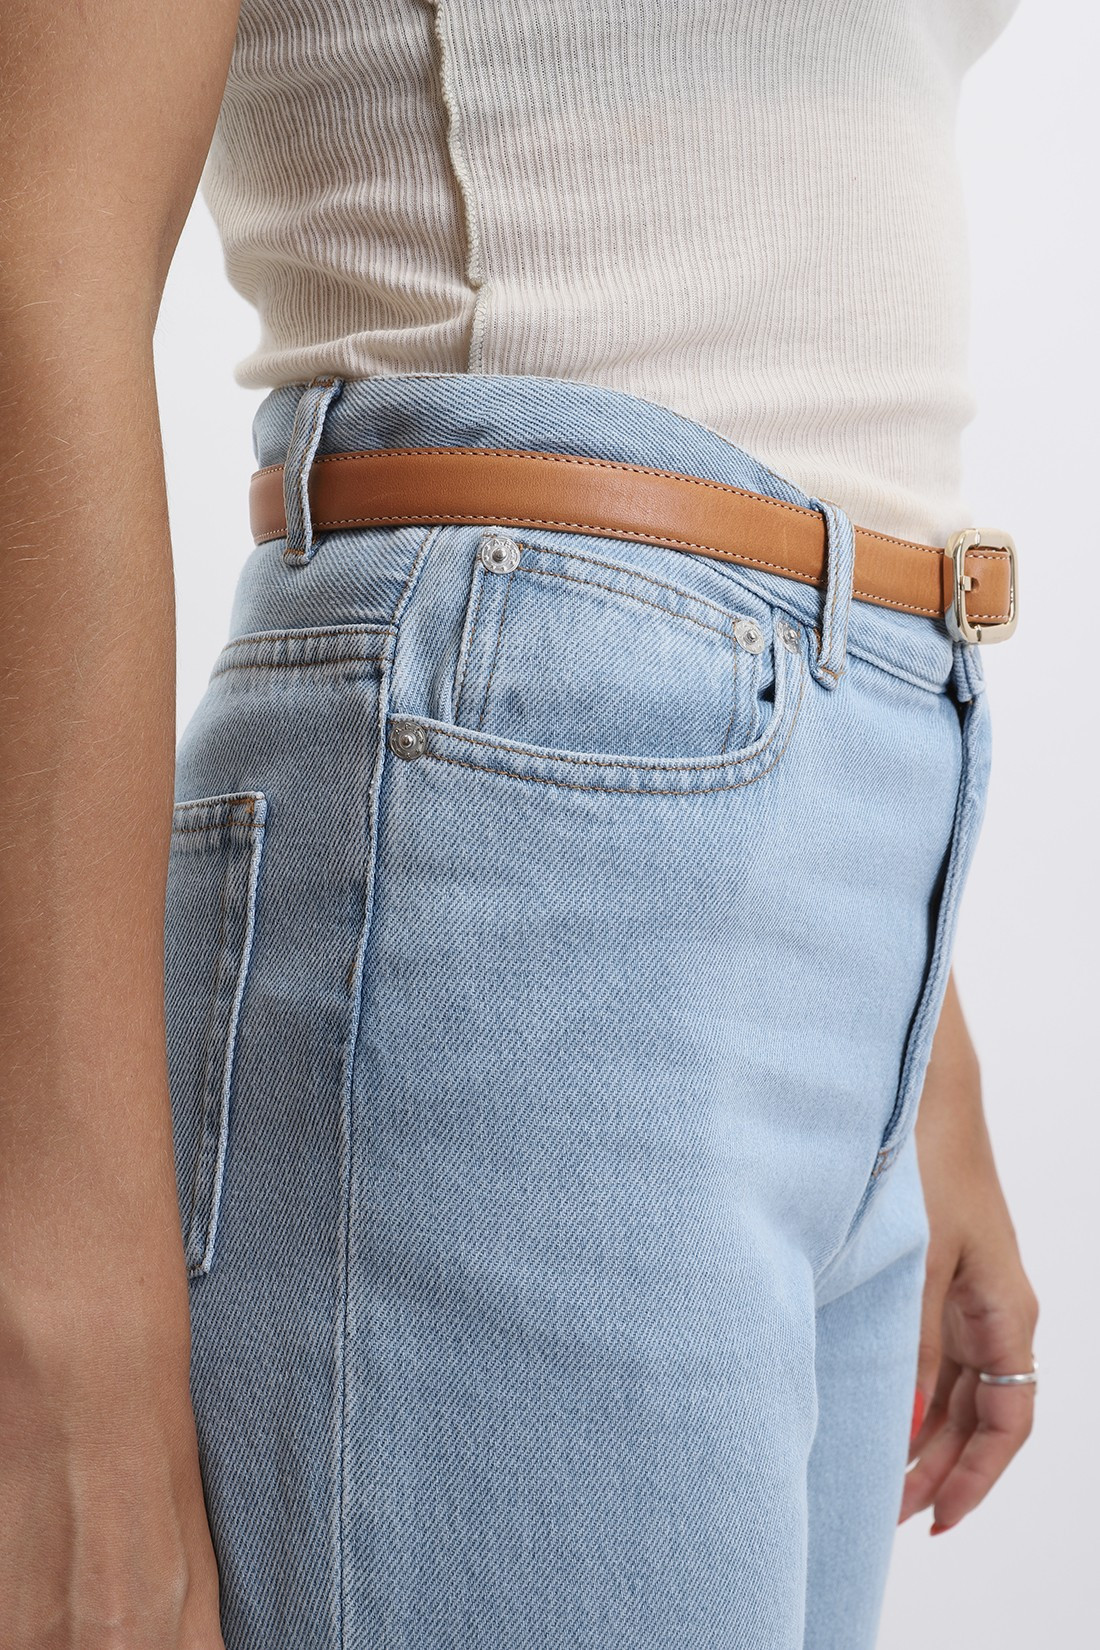 A.P.C. FOR WOMAN / Jean new sailor Bleu clair